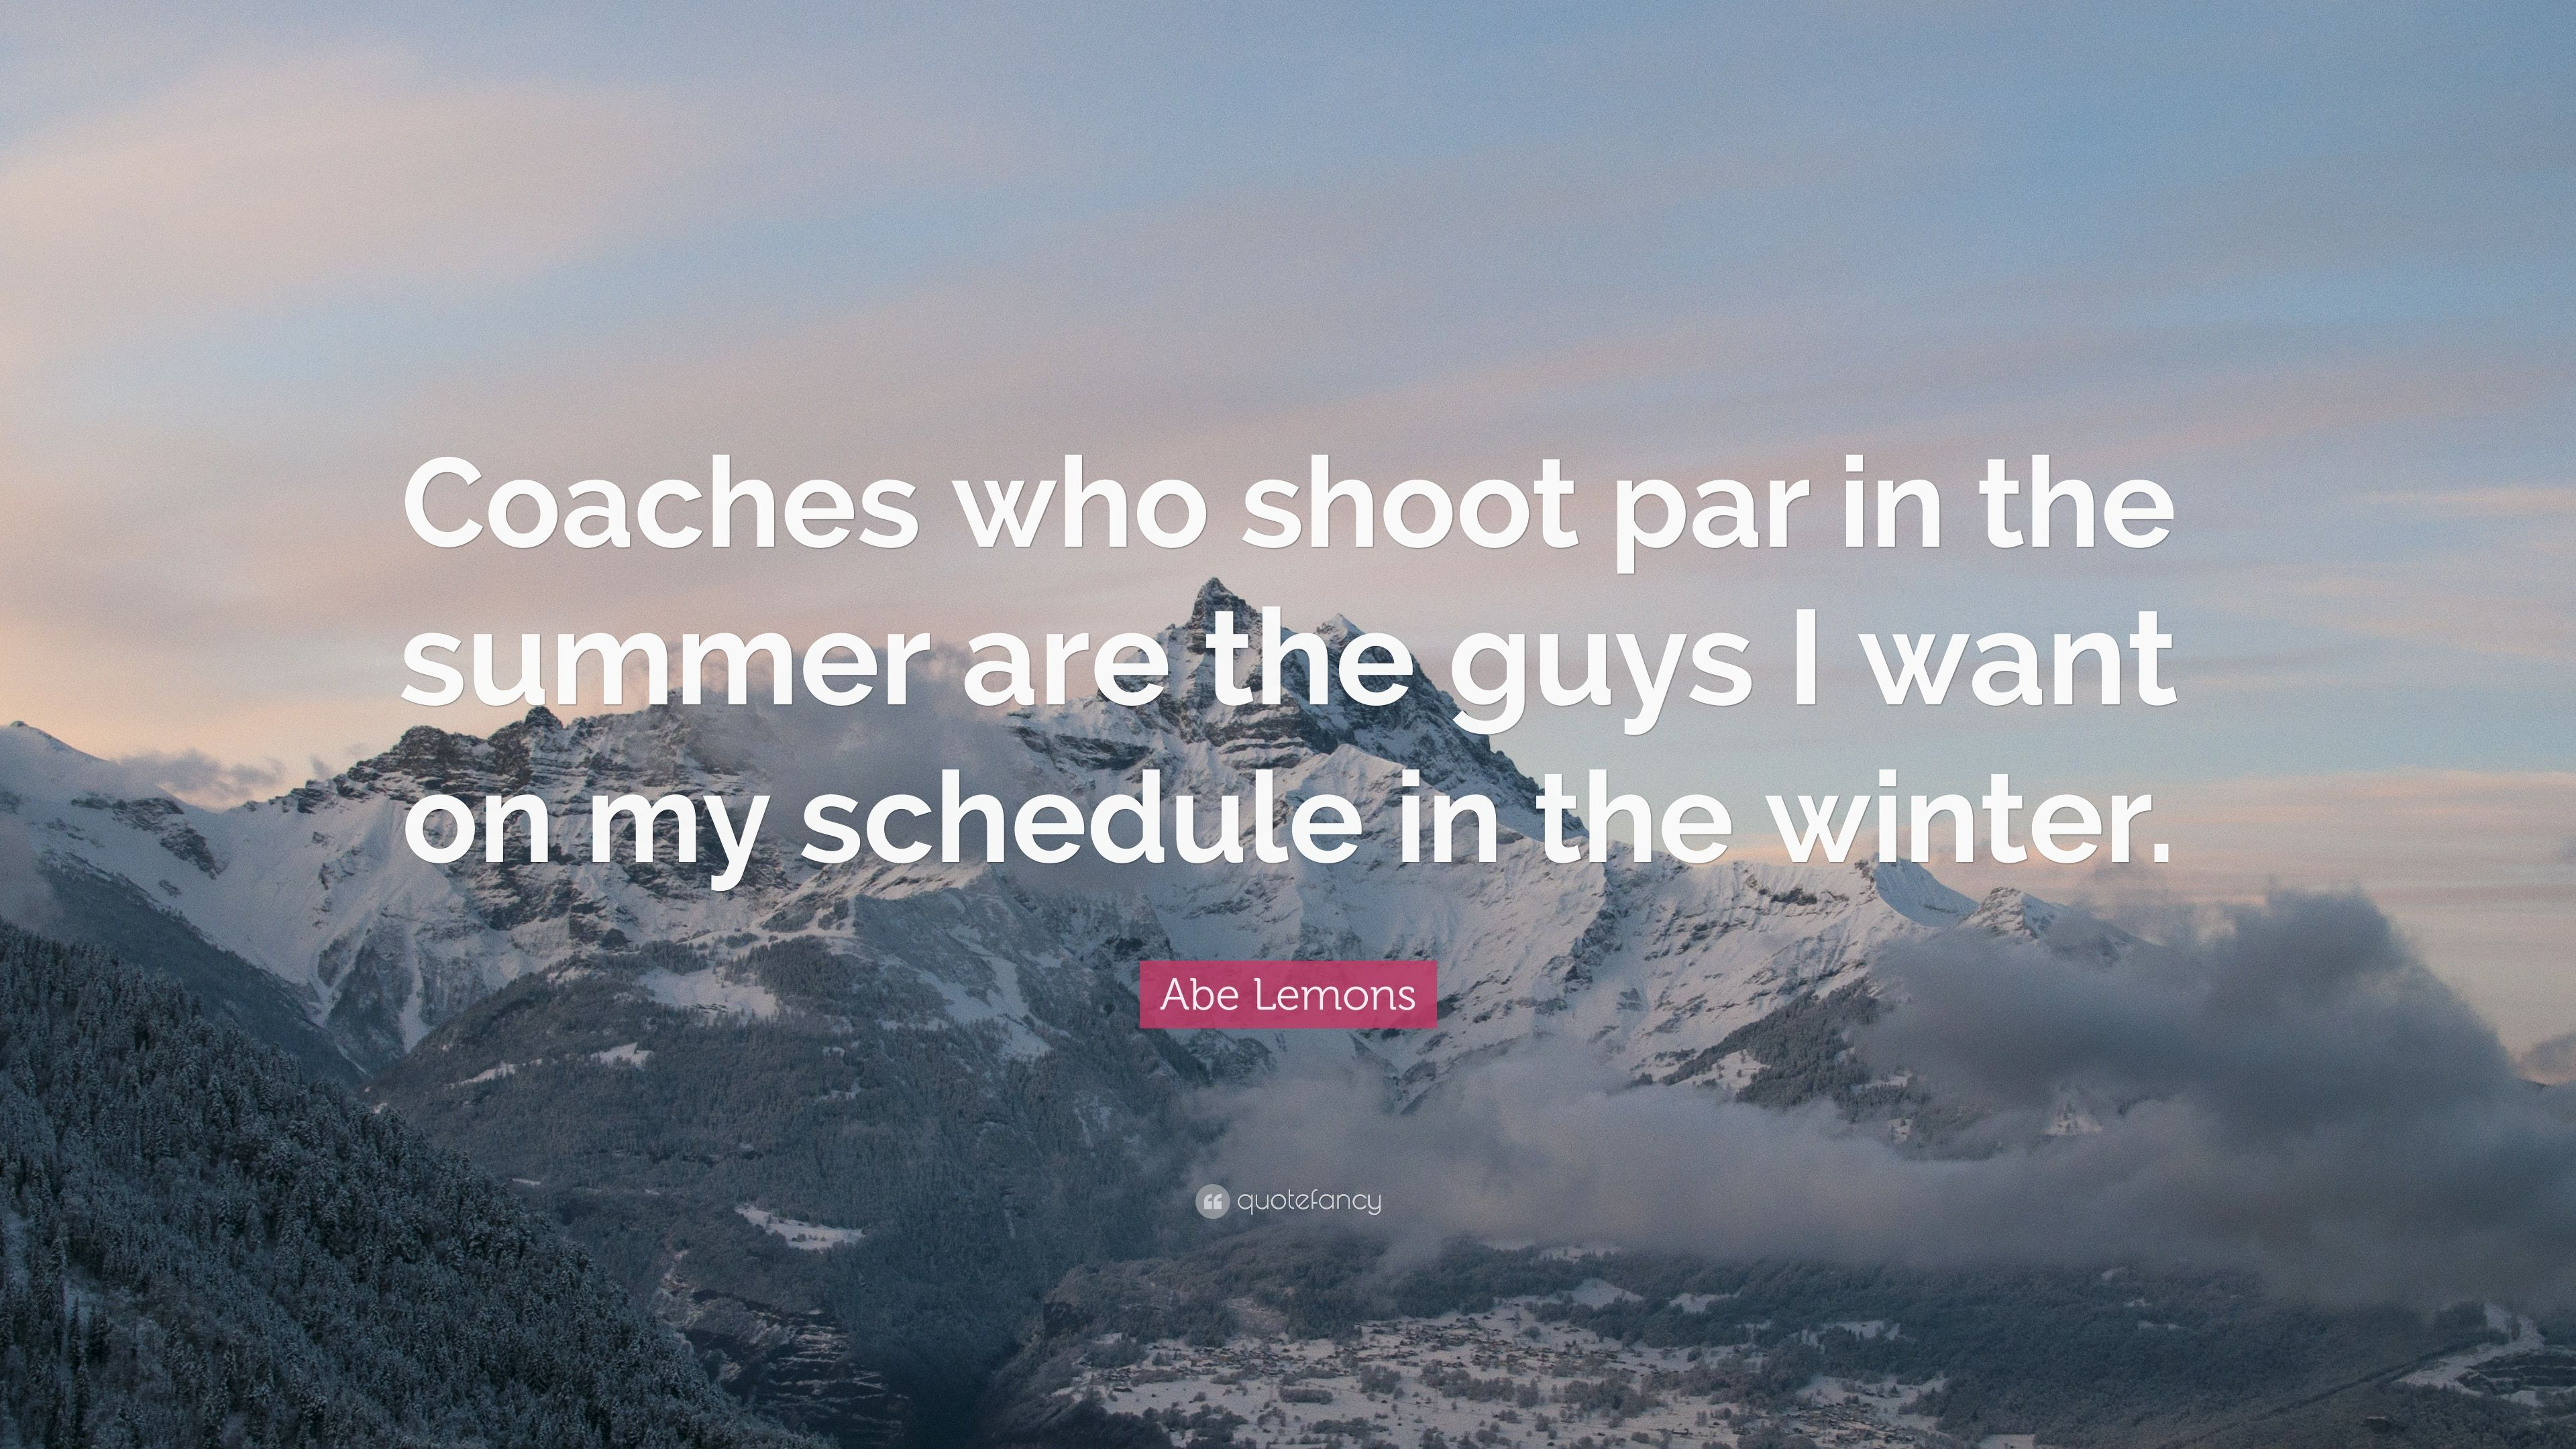 Abe Lemons Quote: U201cCoaches Who Shoot Par In The Summer Are The Guys I